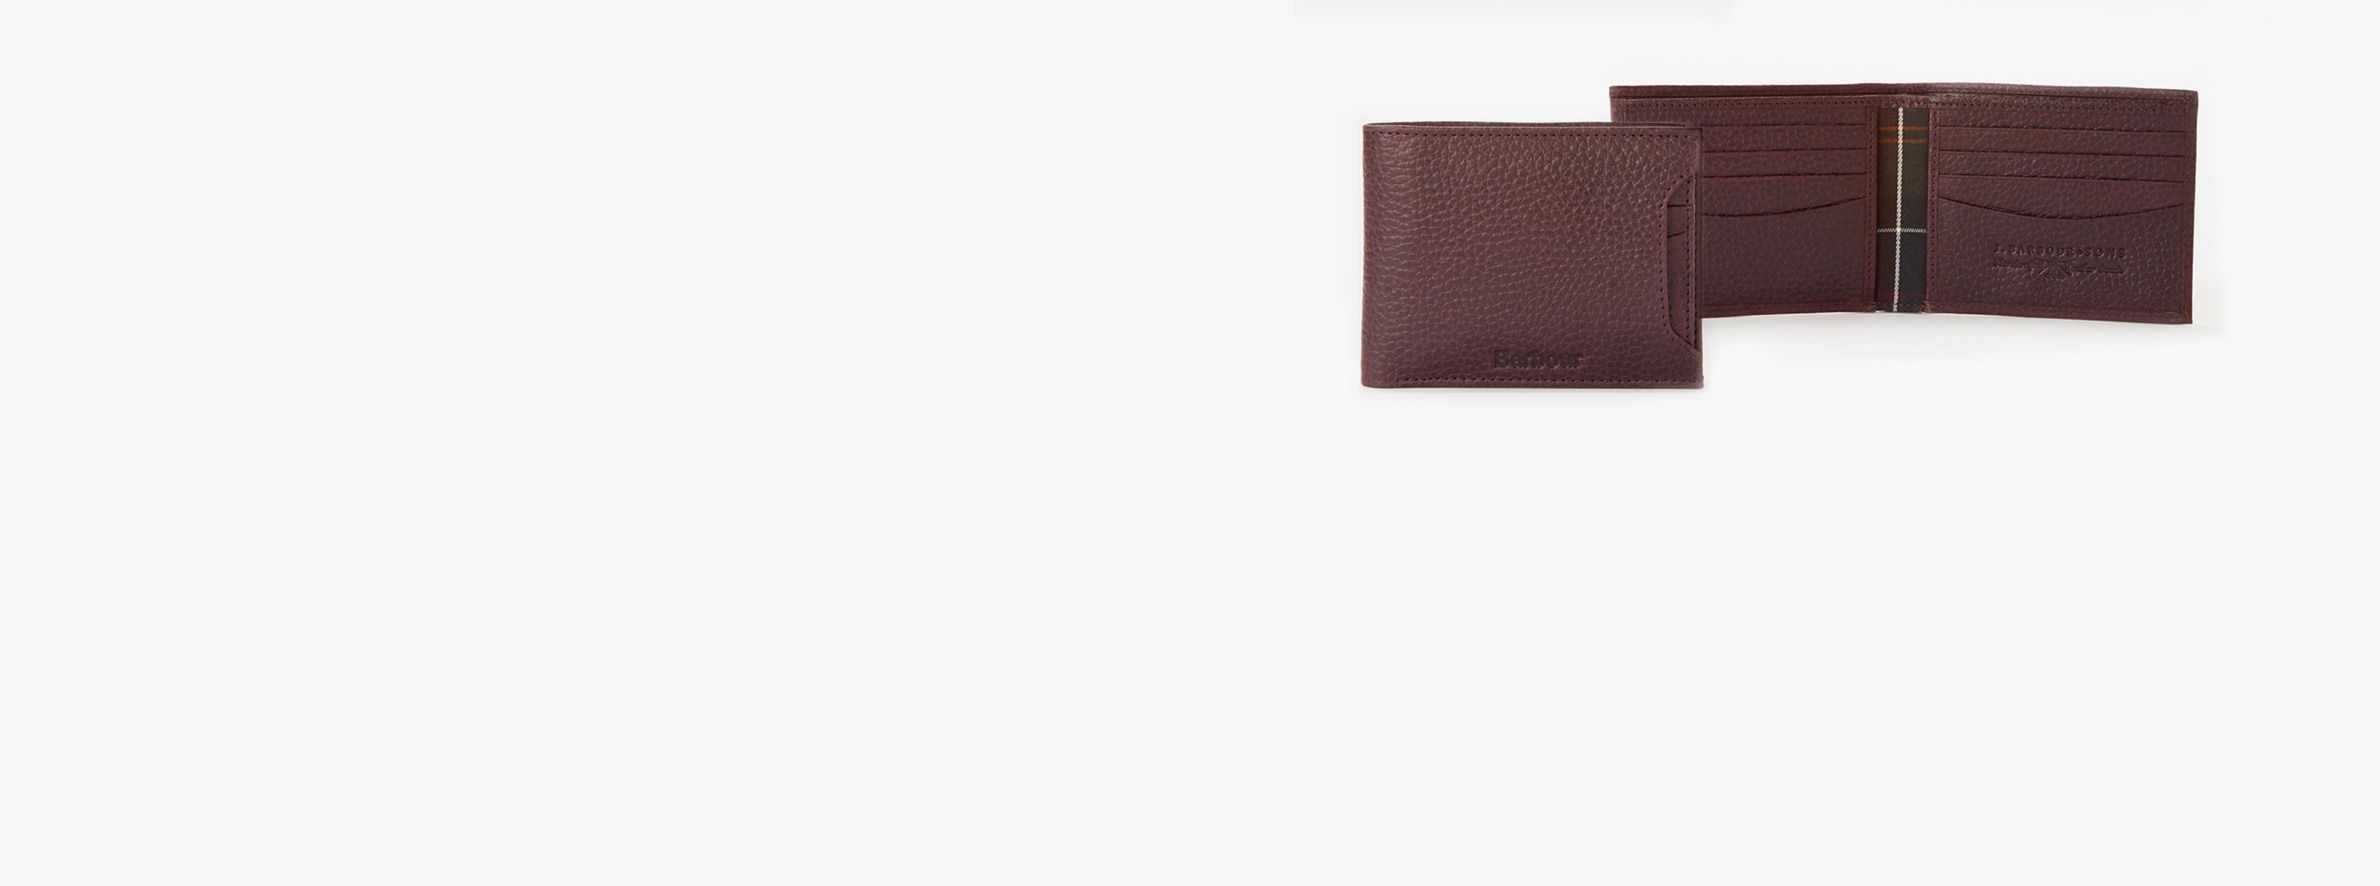 c2d603251c2229 Barbour Wallets